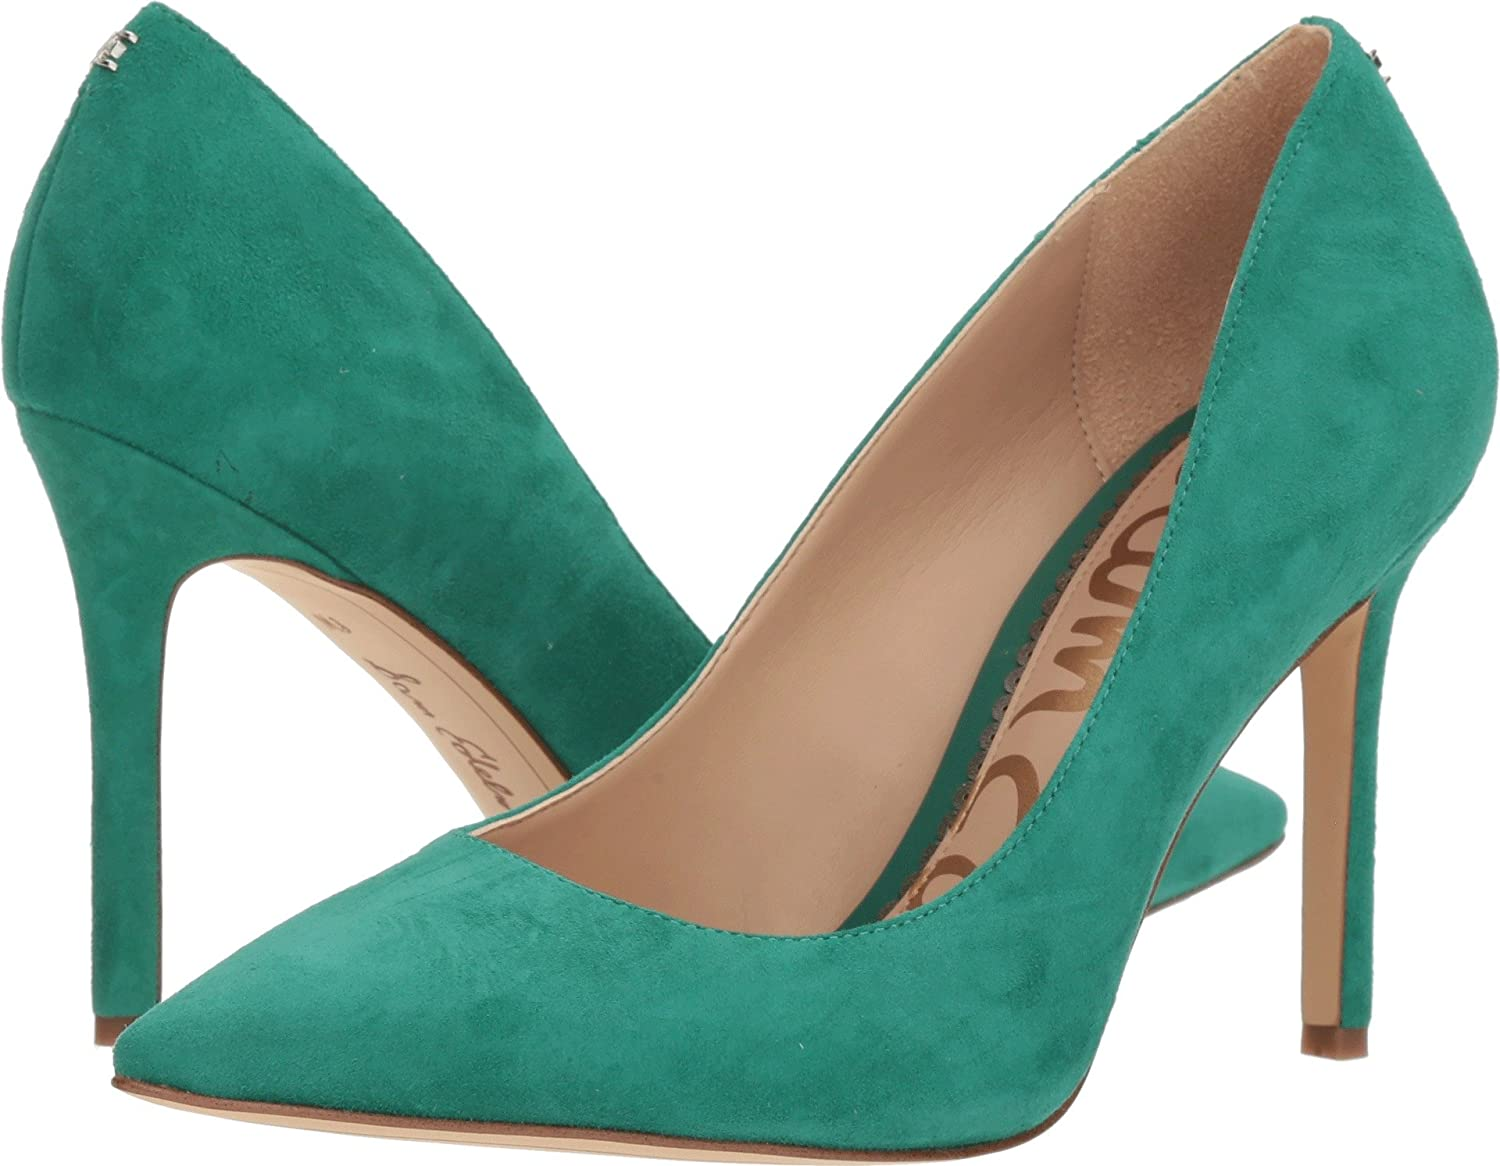 Sam Edelman Women's Hazel Dress Pump B076NXKF17 9 W US|Jade Green Kid Suede Leather